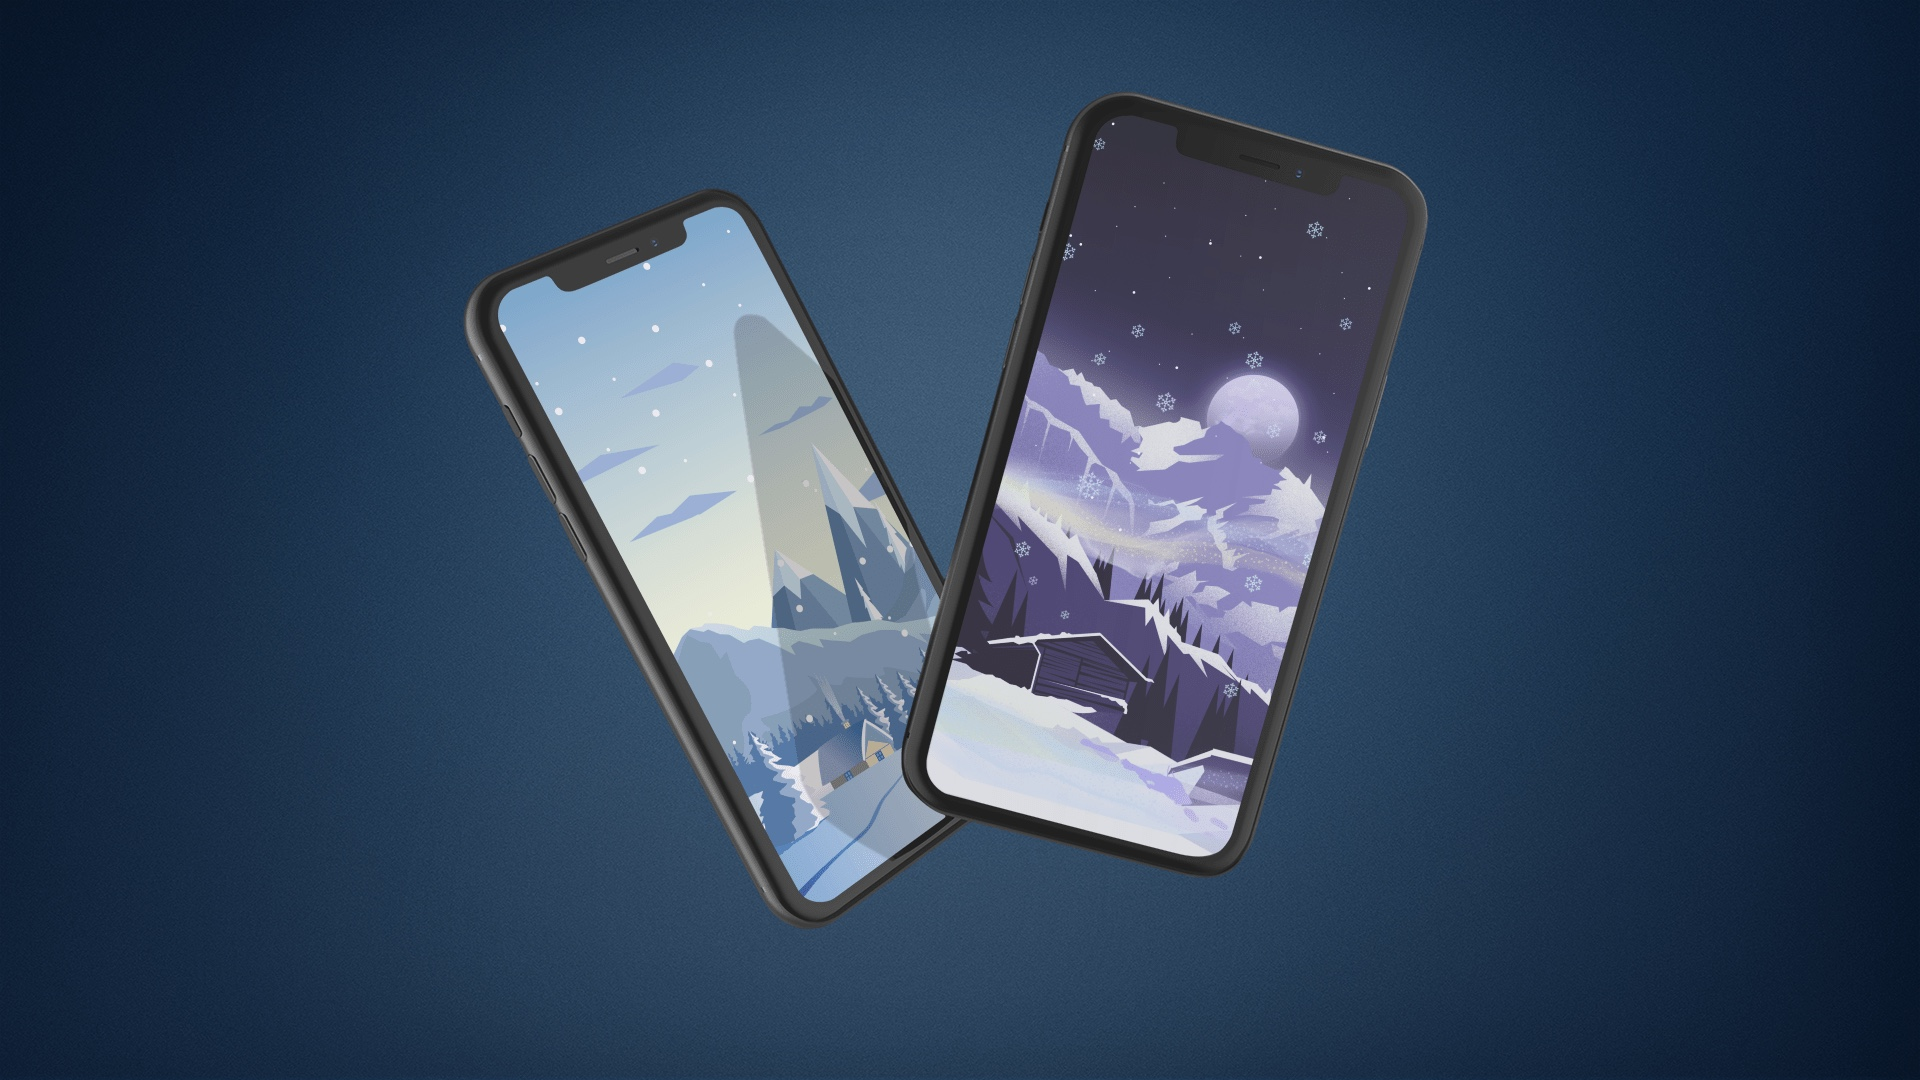 Snow wallpapers for iPhone